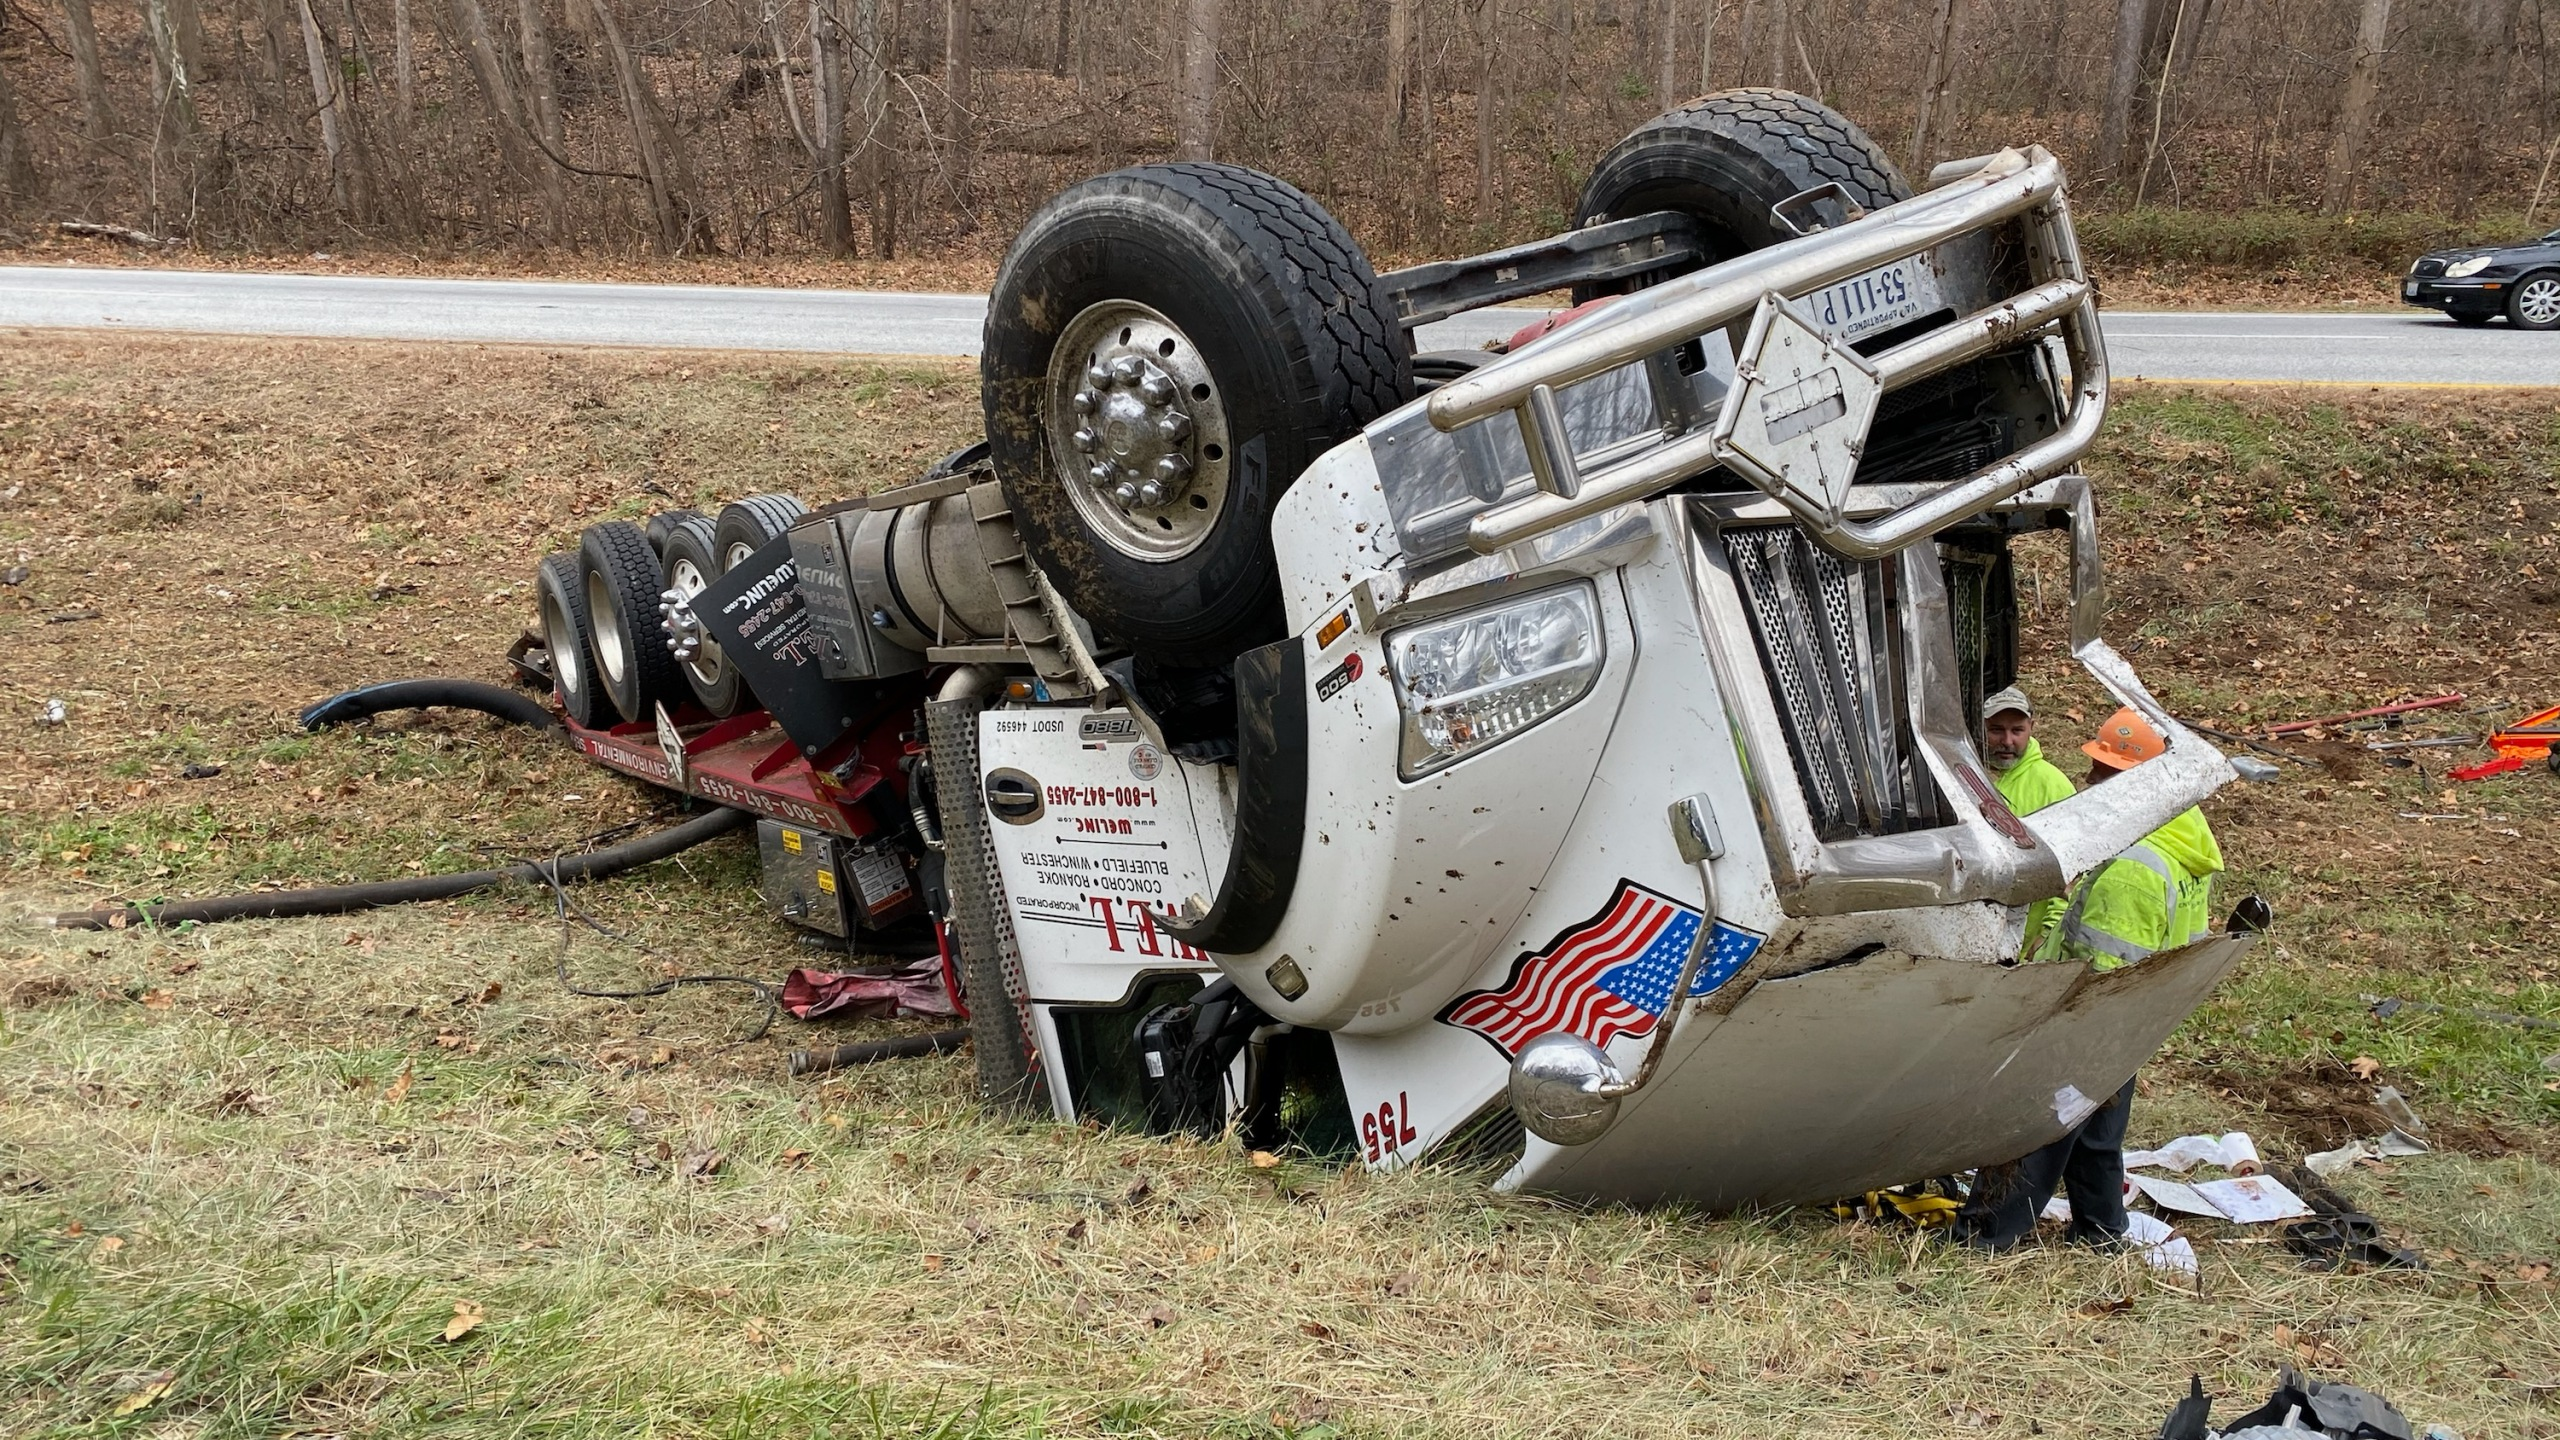 This truck crashed on U.S. Highway 29 in Nelson County on Sunday, Nov. 17. (Photo: Ryan Saylor/WFXR News)